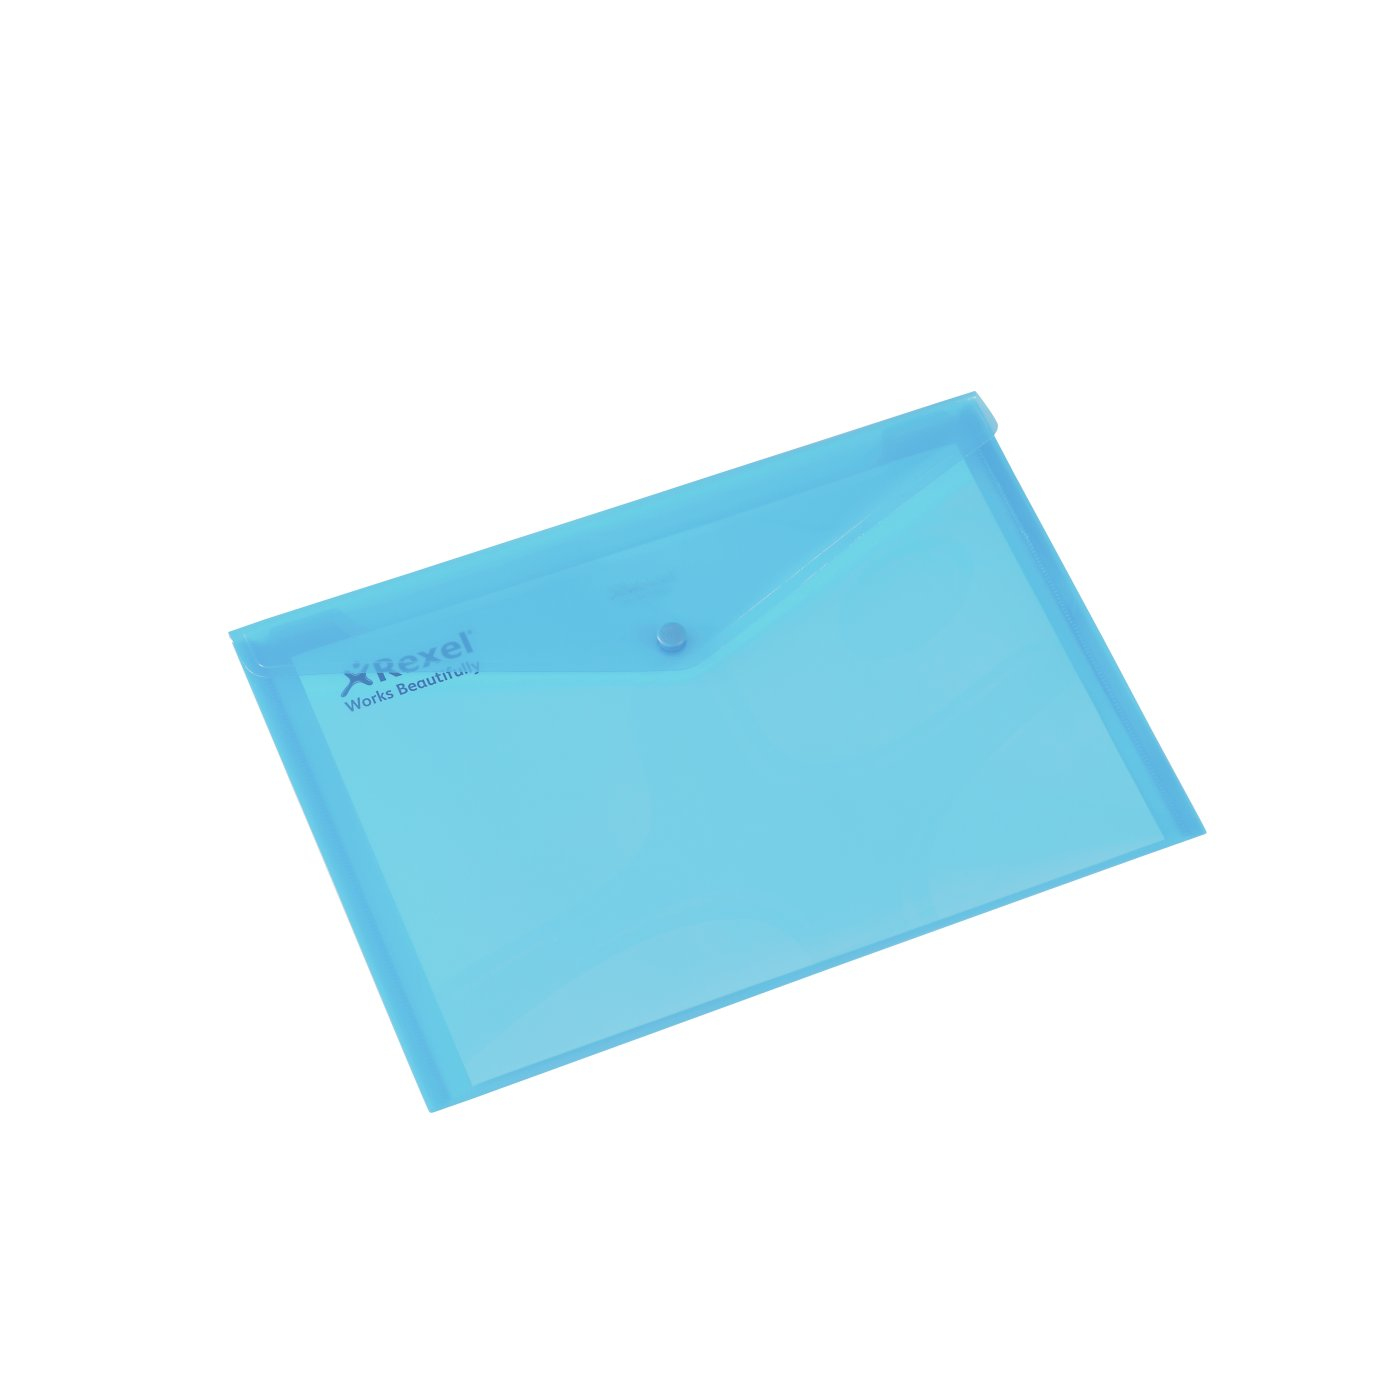 16129bu acco Rexel Polypropylene Carry Wallet A4 Blue  16129bu (pk5) - AD01